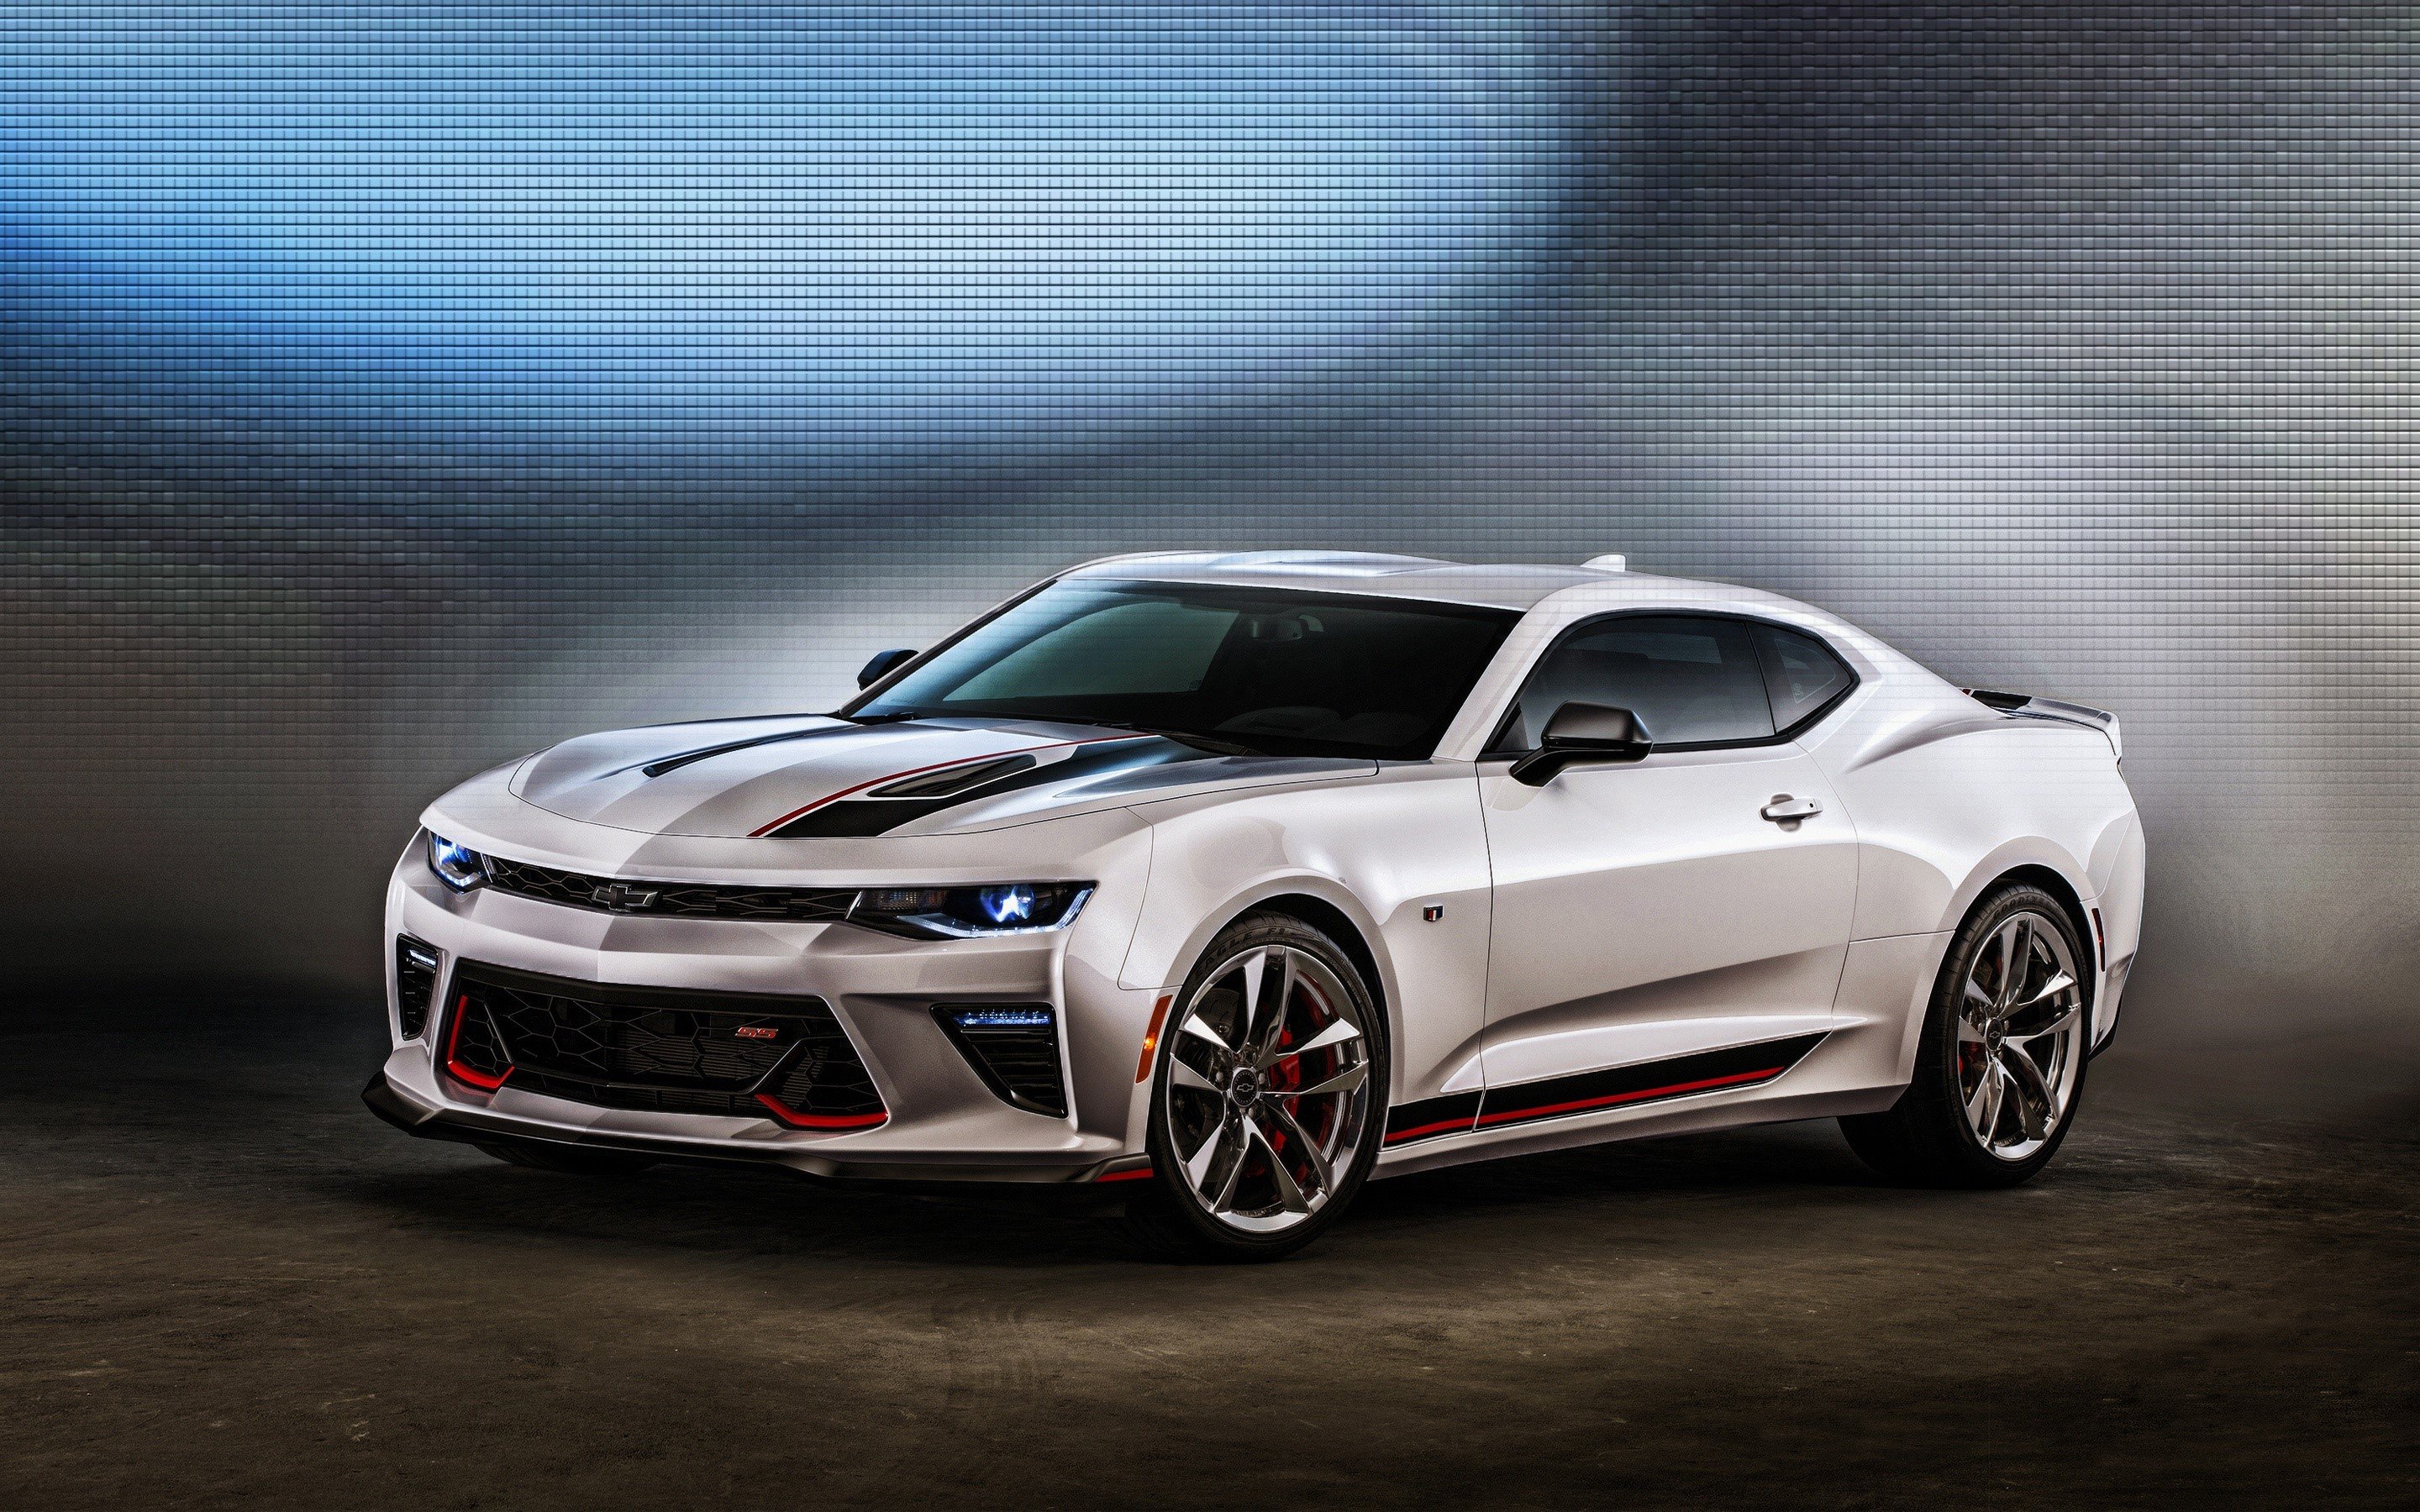 Wallpaper Chevrolet Camaro SS Concept